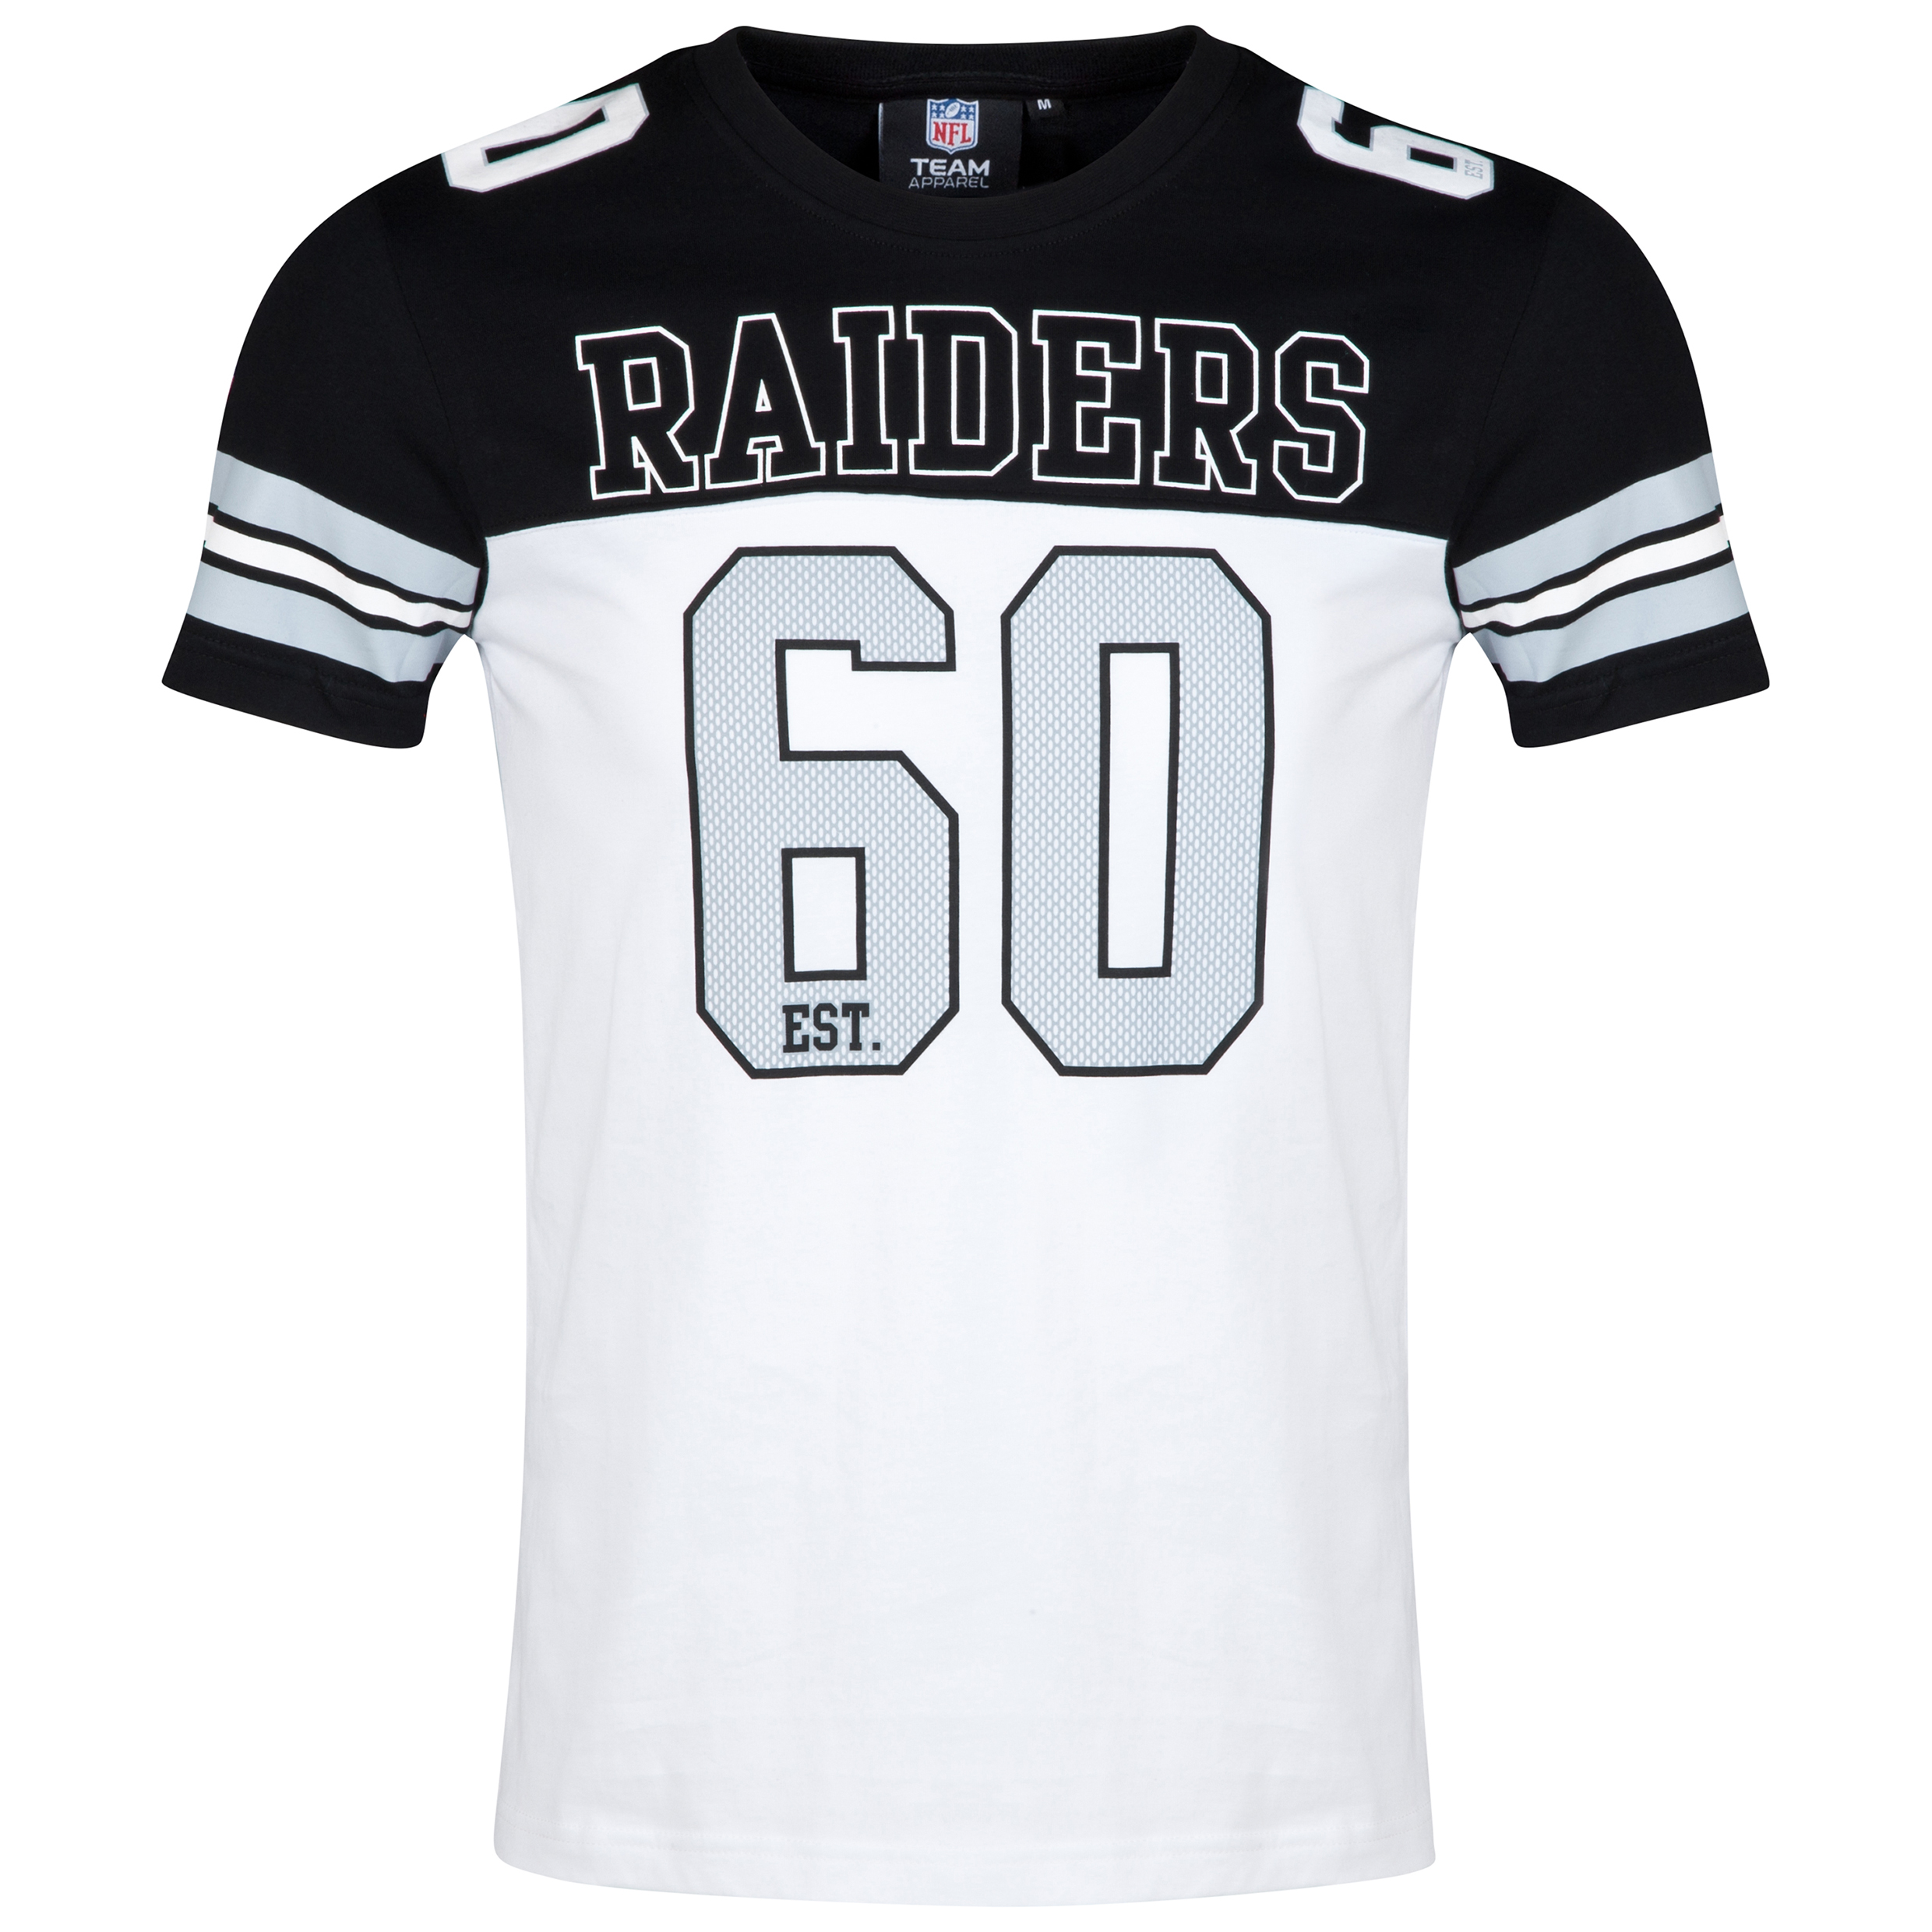 Oakland Raiders Coach Classic T-Shirt